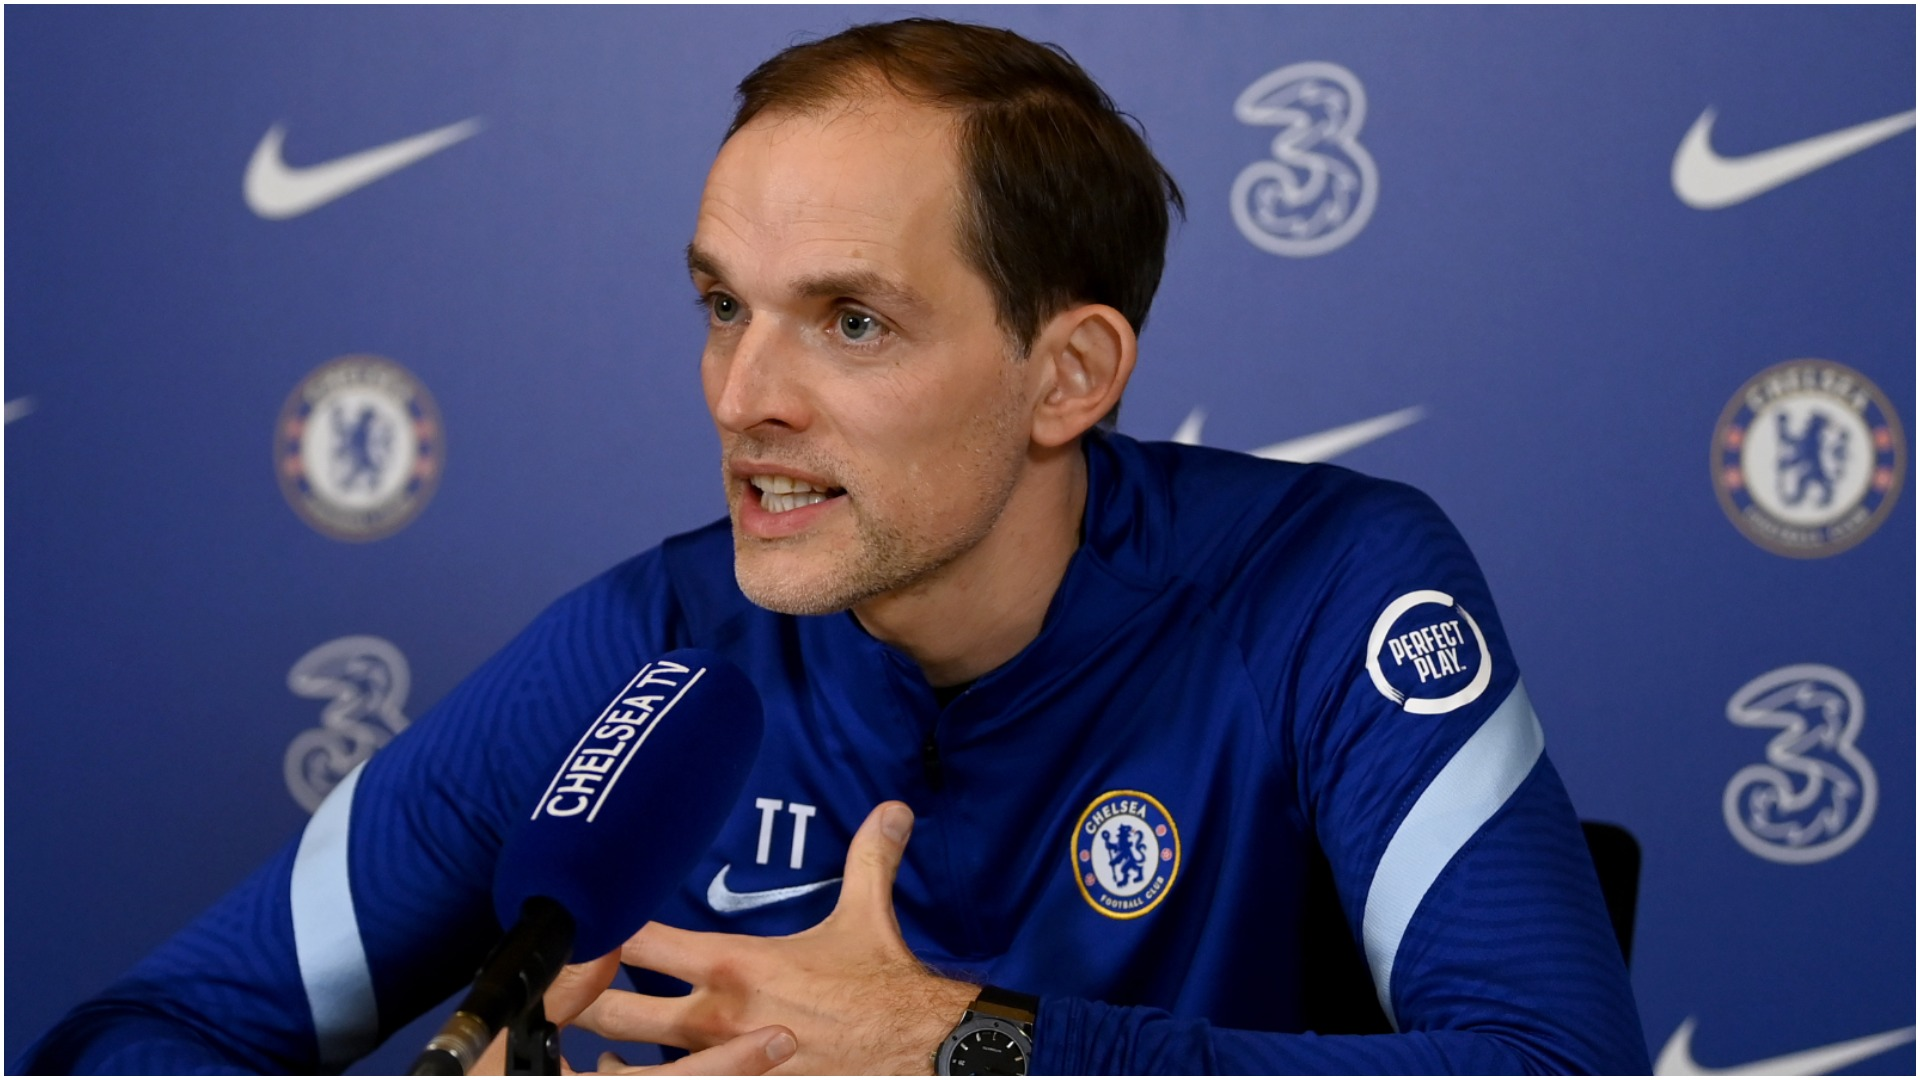 New Chelsea boss Tuchel makes big admission: Yes, I was a Spurs fan!